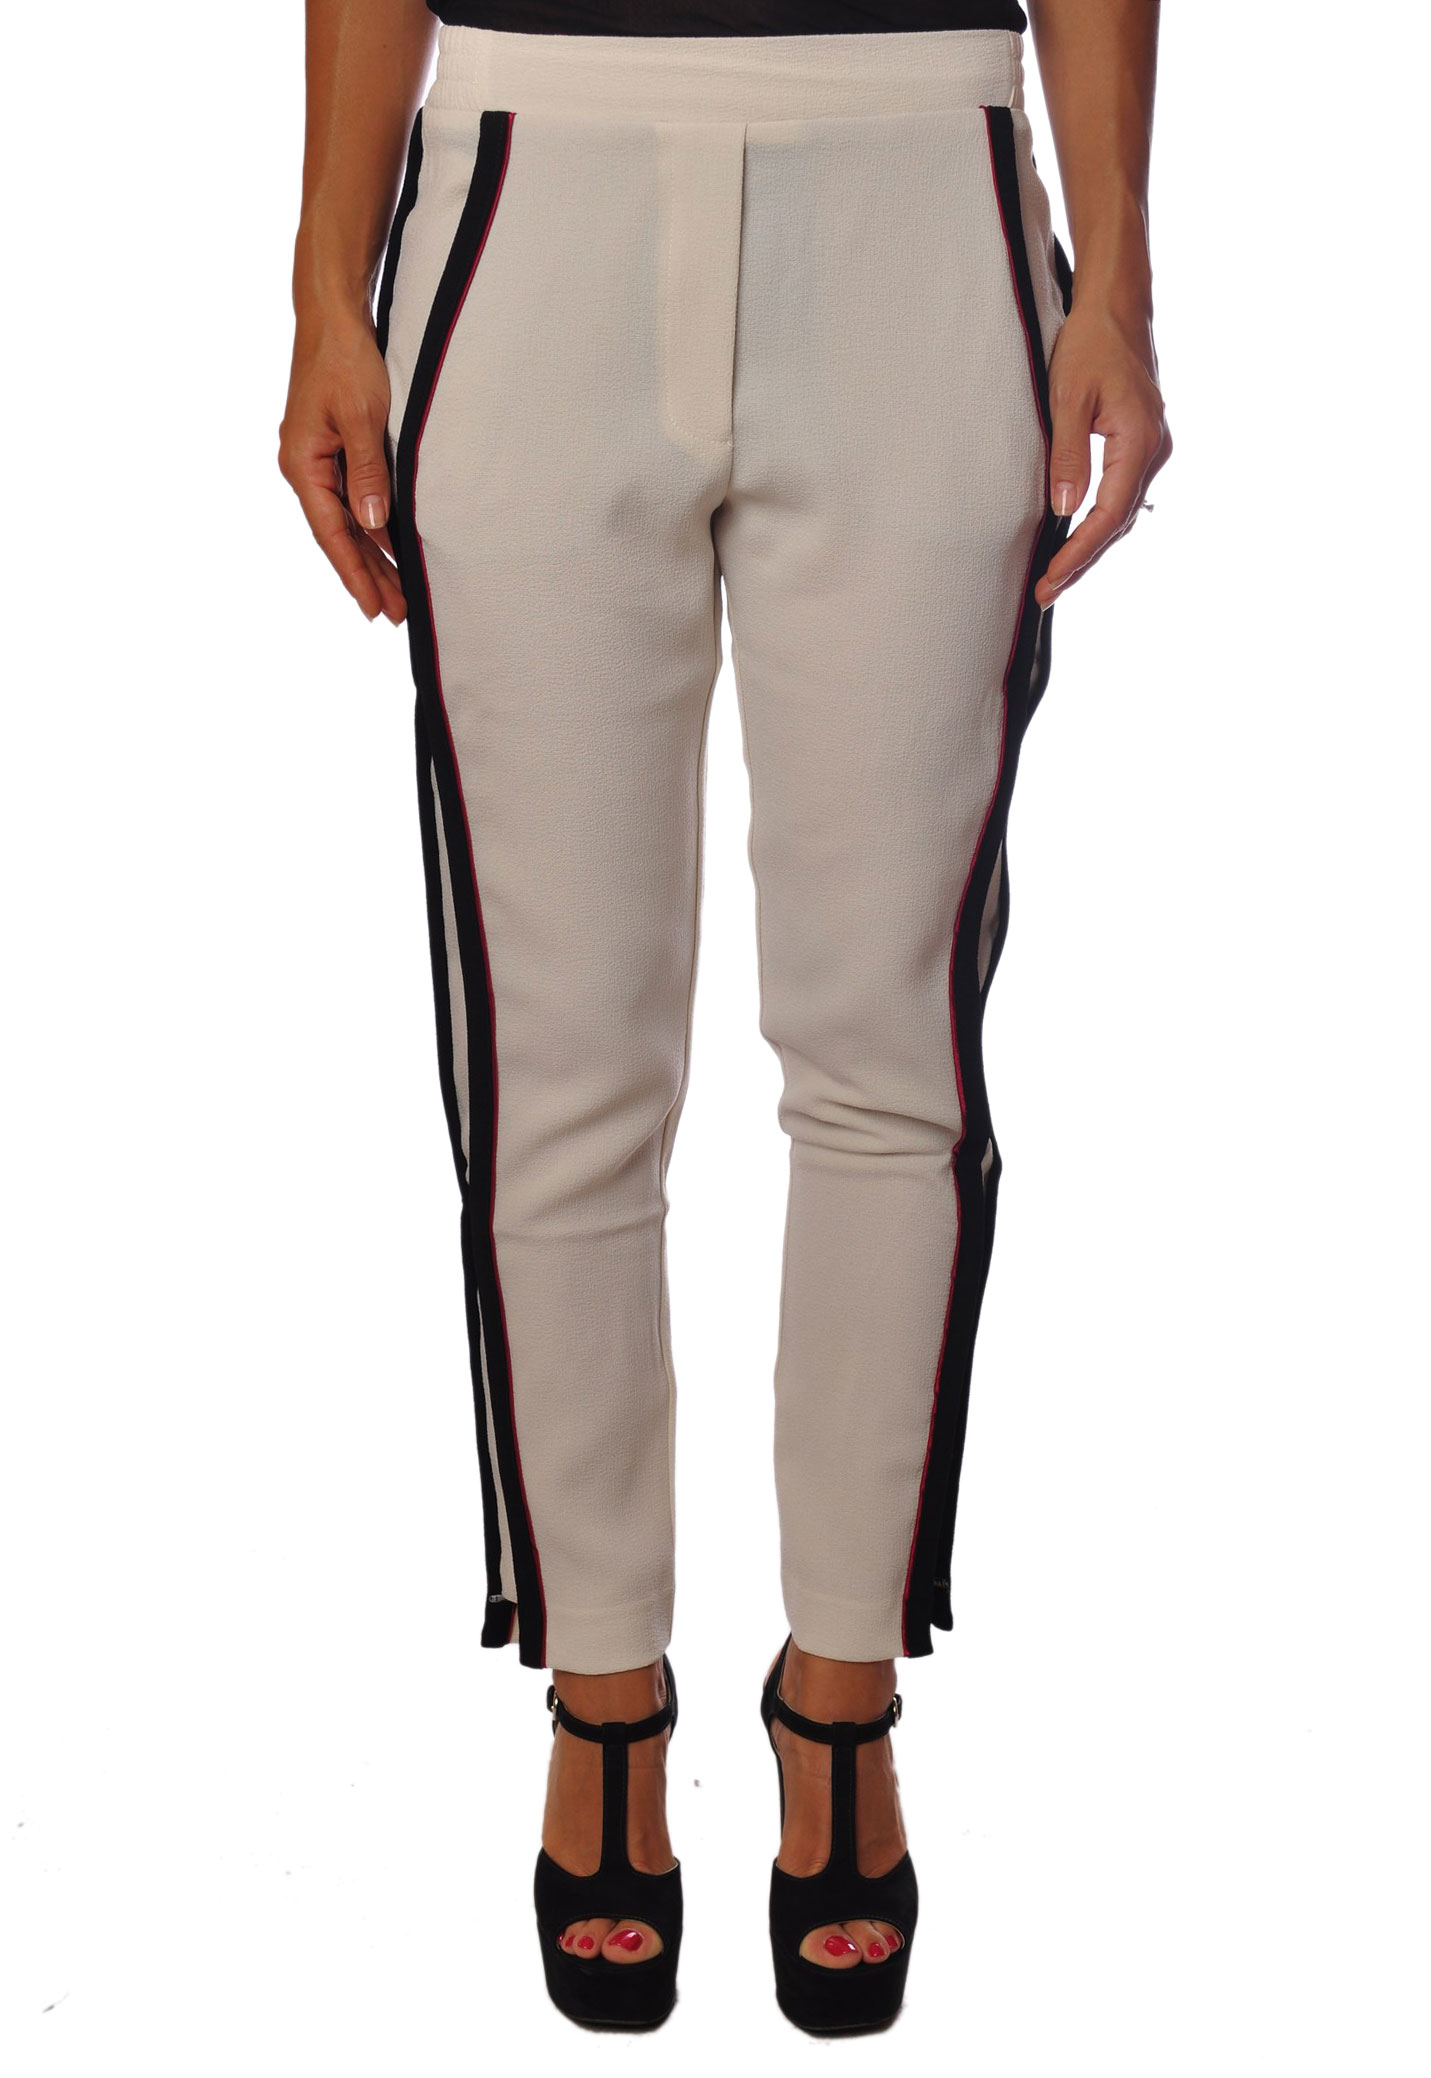 8pm  -  Pants - Female - White - 100124A183909